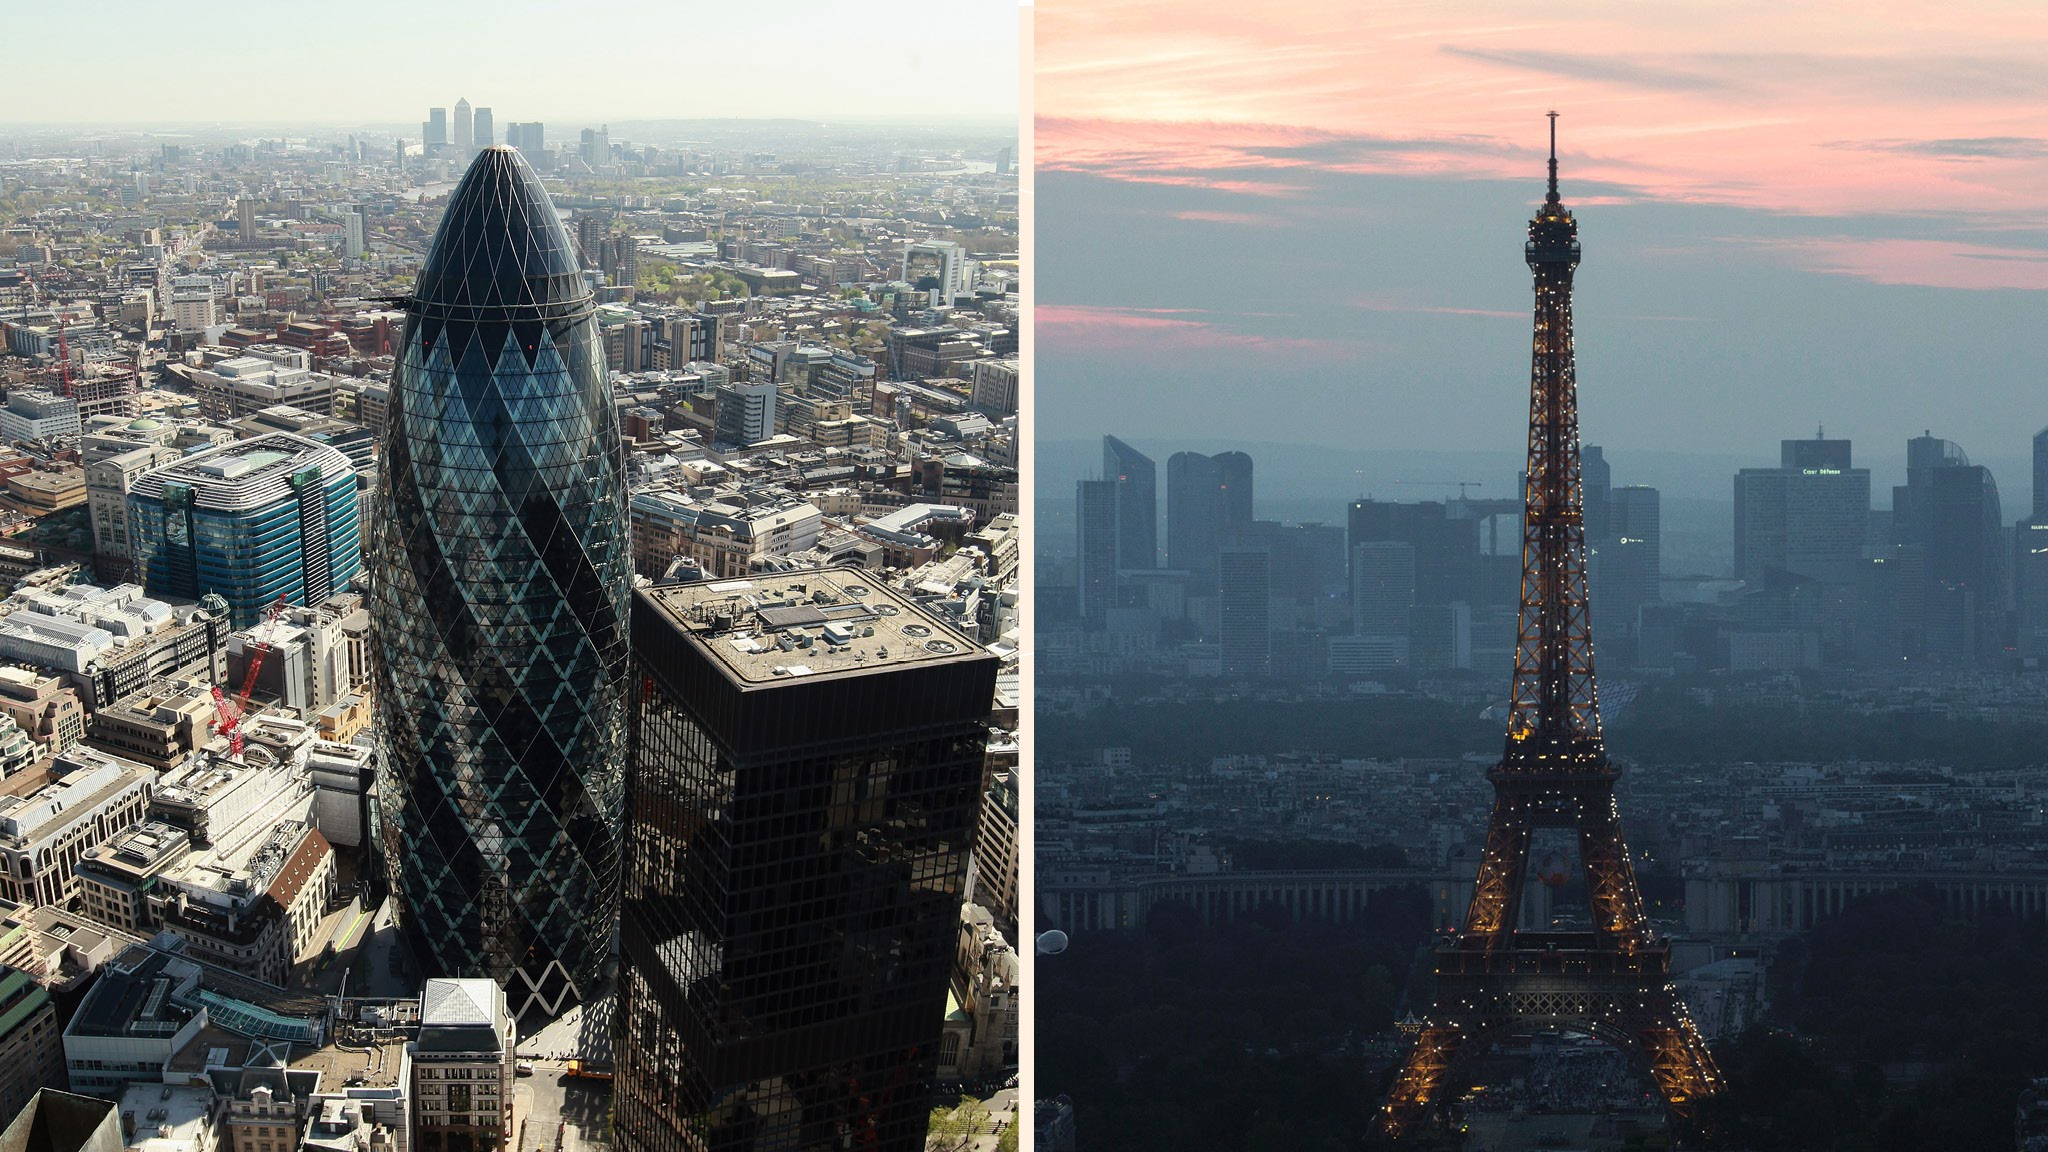 Brexit vote puts brake on flow of French bankers to London